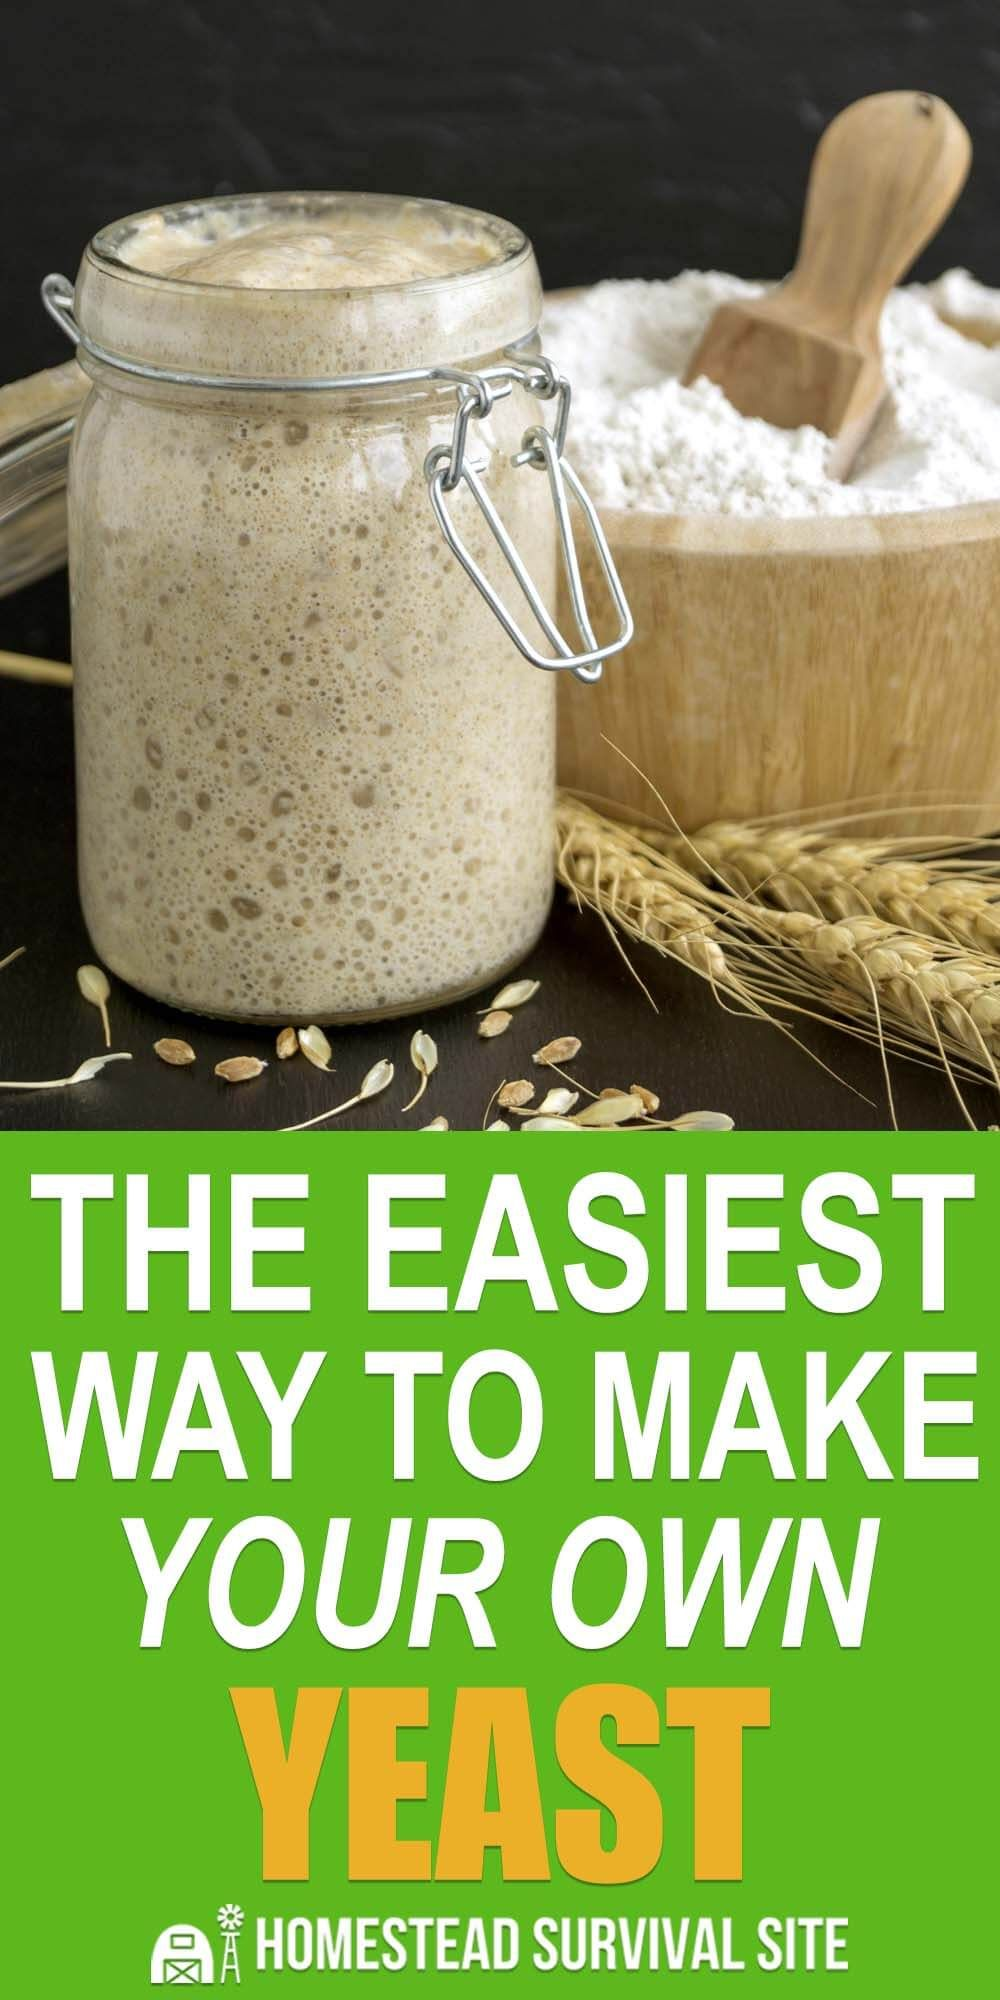 The Easiest Way to Make Your Own Yeast - Homestead Survival Site